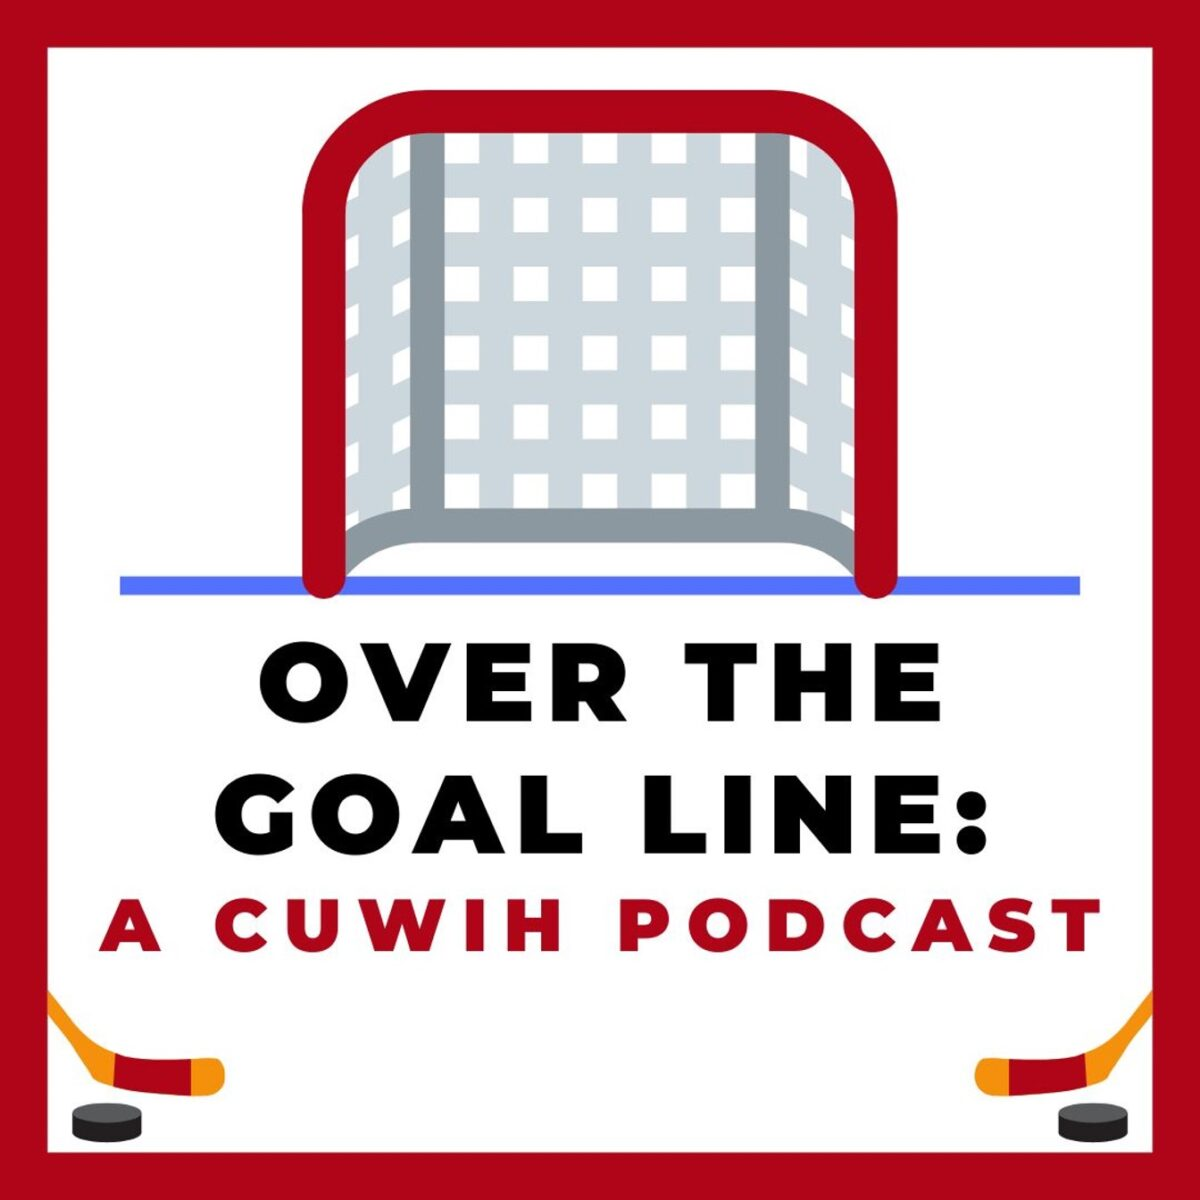 Over The Goal Line Podcast